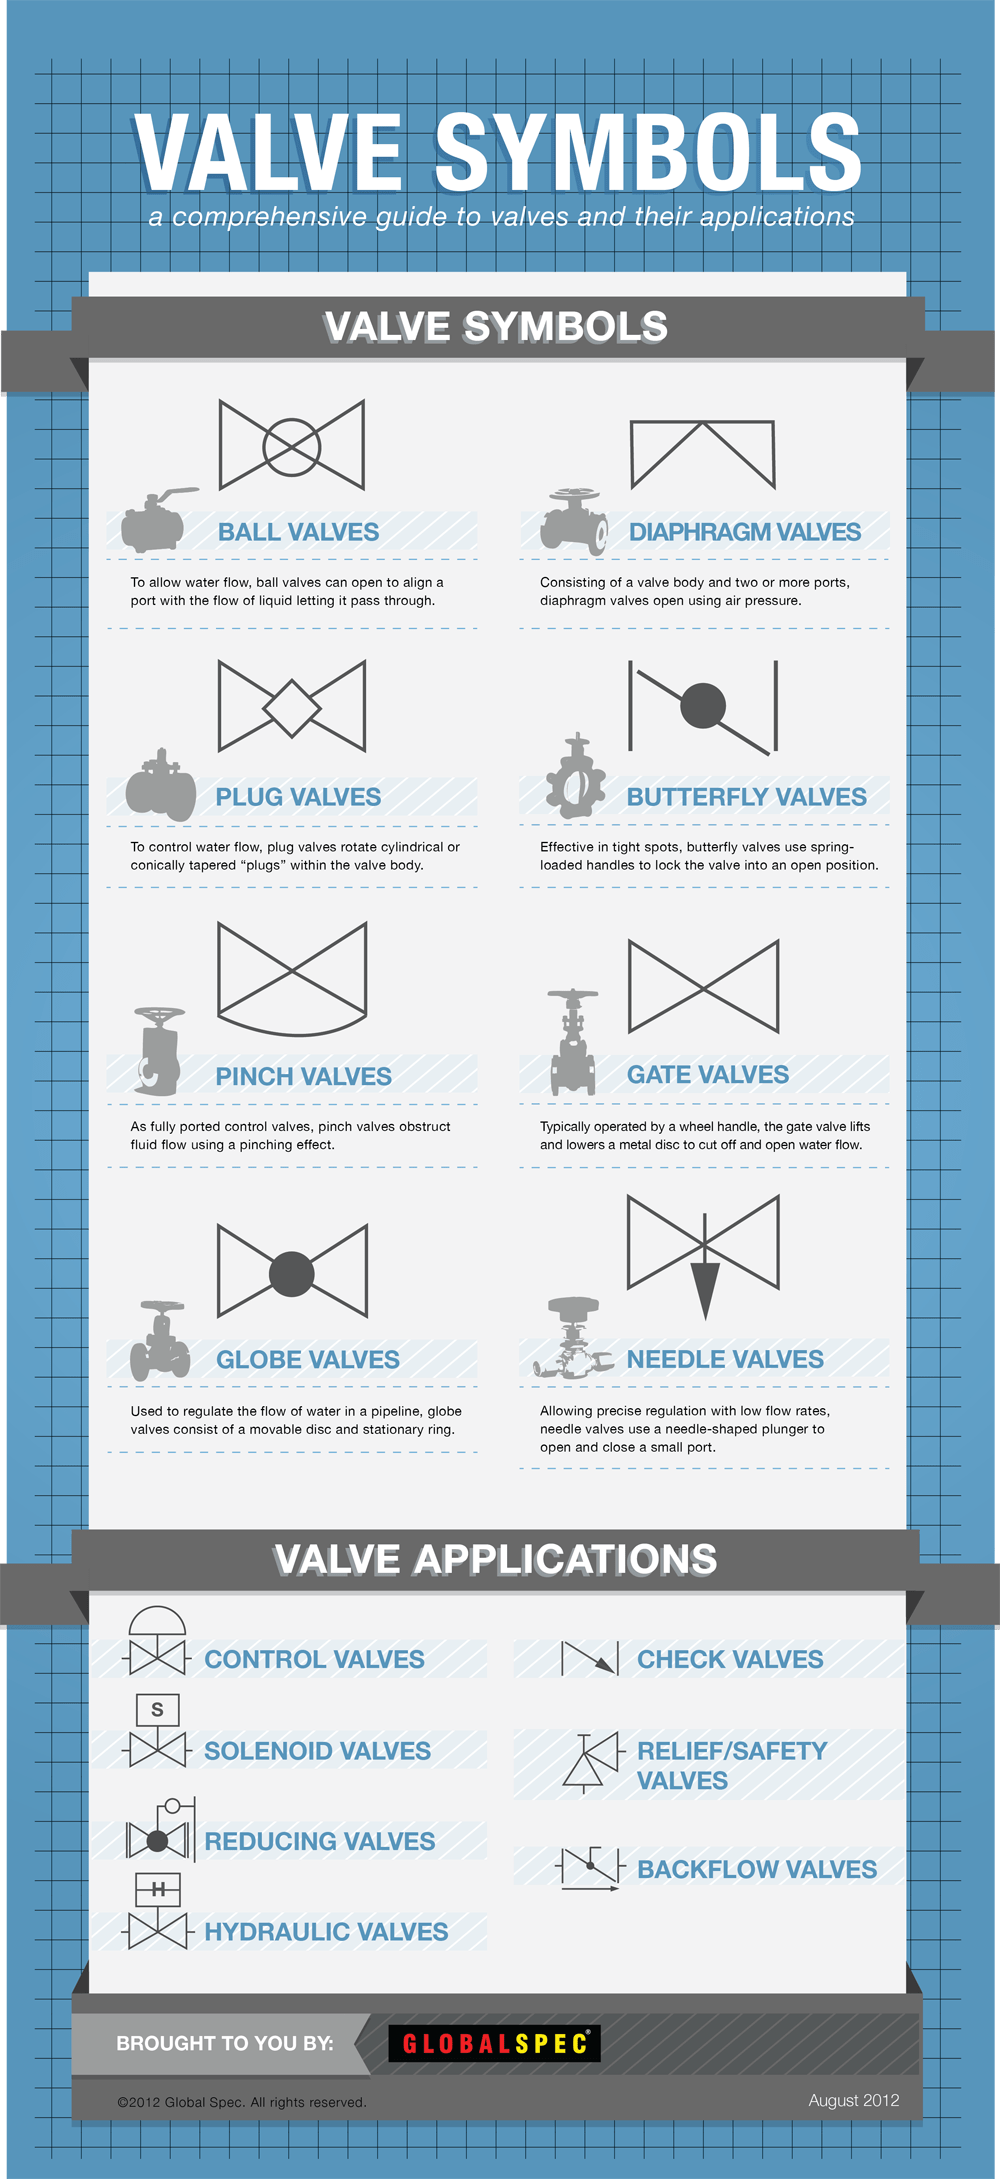 hight resolution of just as various organizations have sought to standardize valves symbols are used to help identify and educate those who use and purchase valves on what